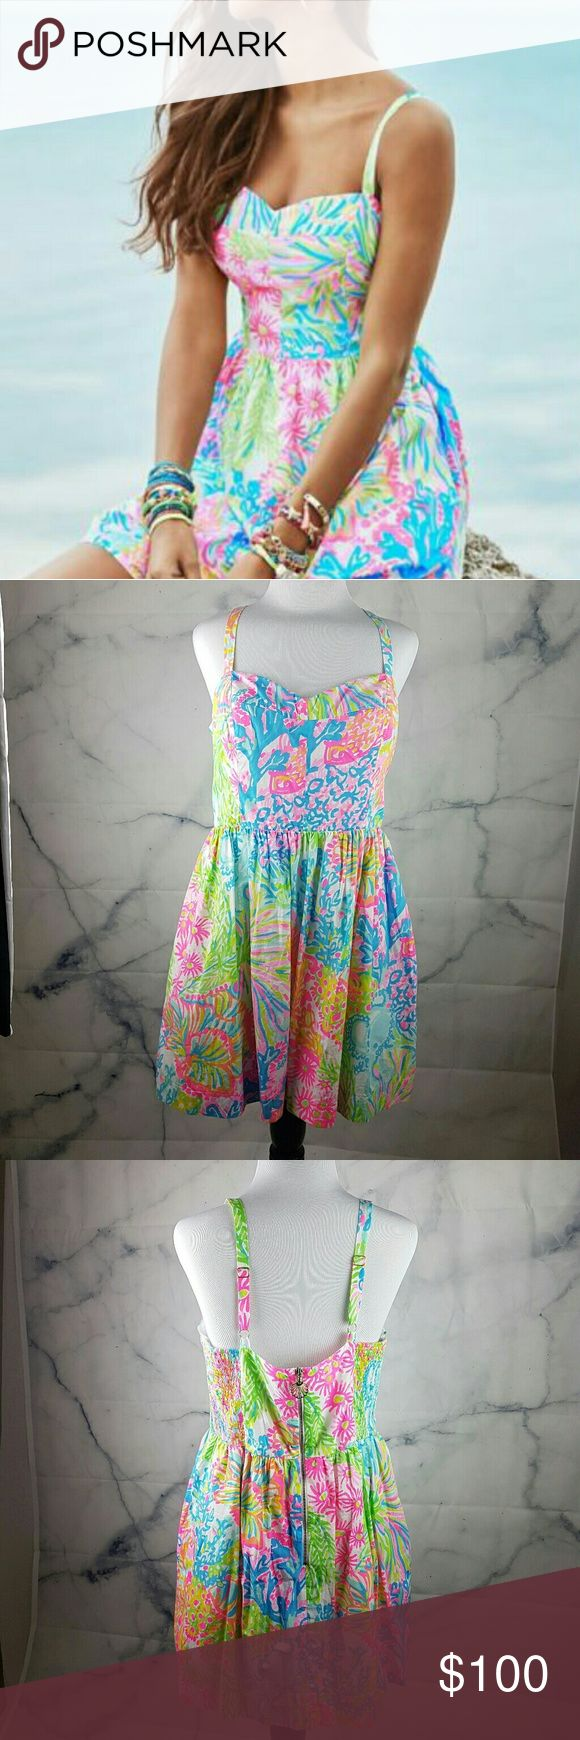 "Lilly Pulitzer Coral Sundress Size 12 This amazing & colorful sundress was gently worn and is in perfect condition. It has a 100% Cotton lining and the zipper has a cute shell detail! This dress is THE summer staple! Fabric: 100% cotton.  Length from straps to seam: 27"" Lilly Pulitzer Dresses Mini"